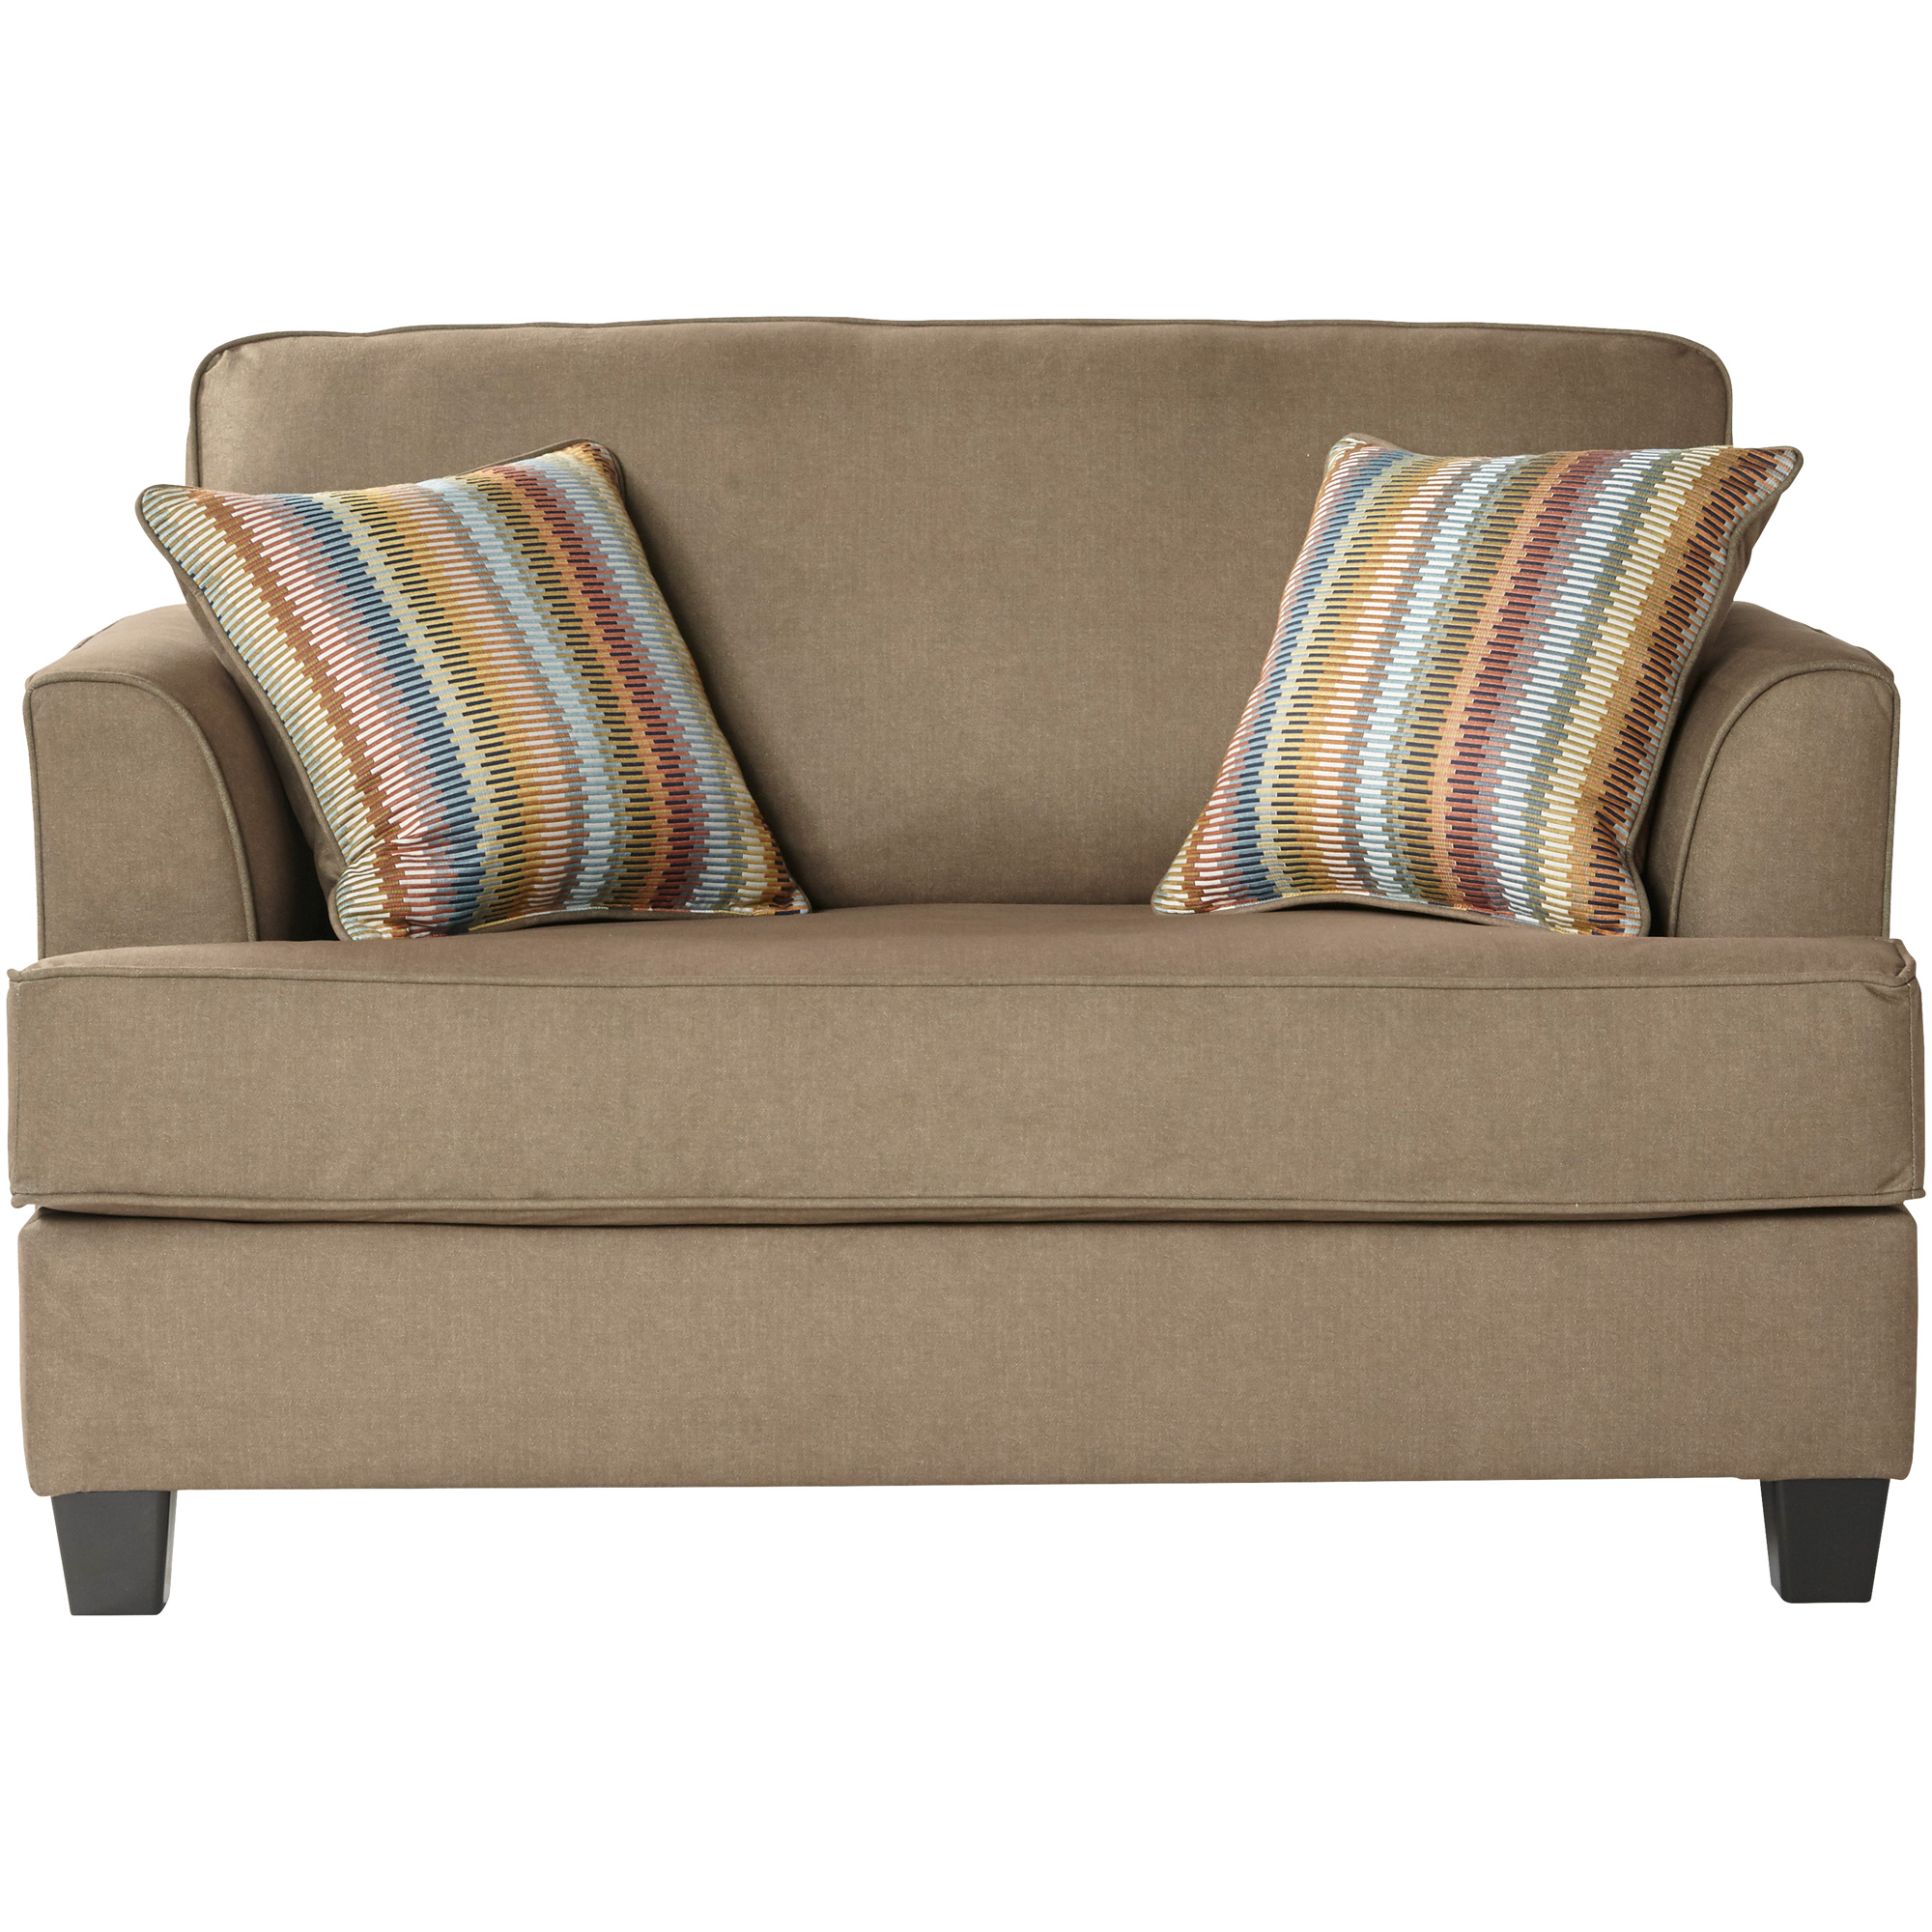 Serta Upholstery By Hughes Furniture | Aloron Beamer Khaki Cuddle Sleeper Sofa